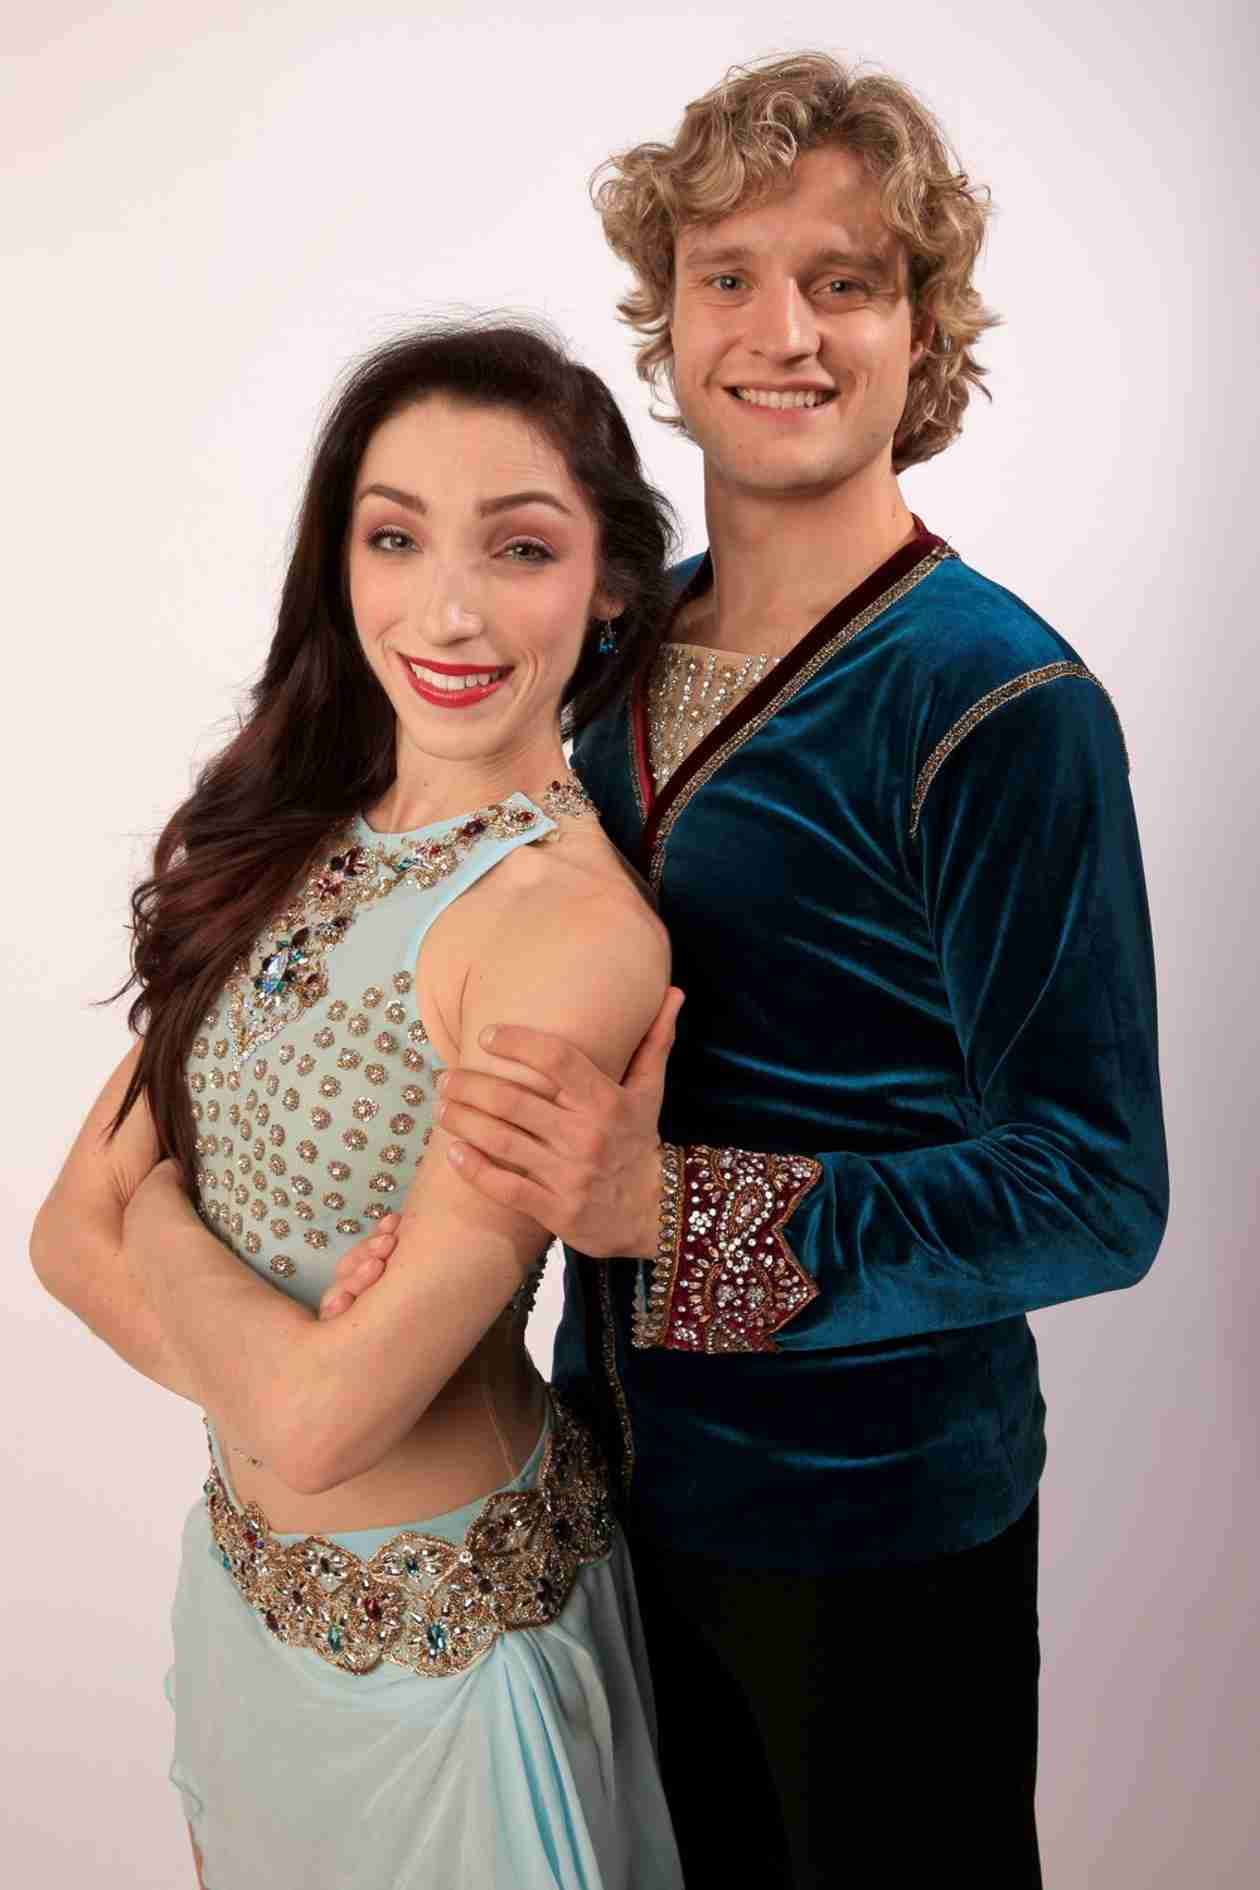 Meryl Davis vs. Charlie White: Who's Older?